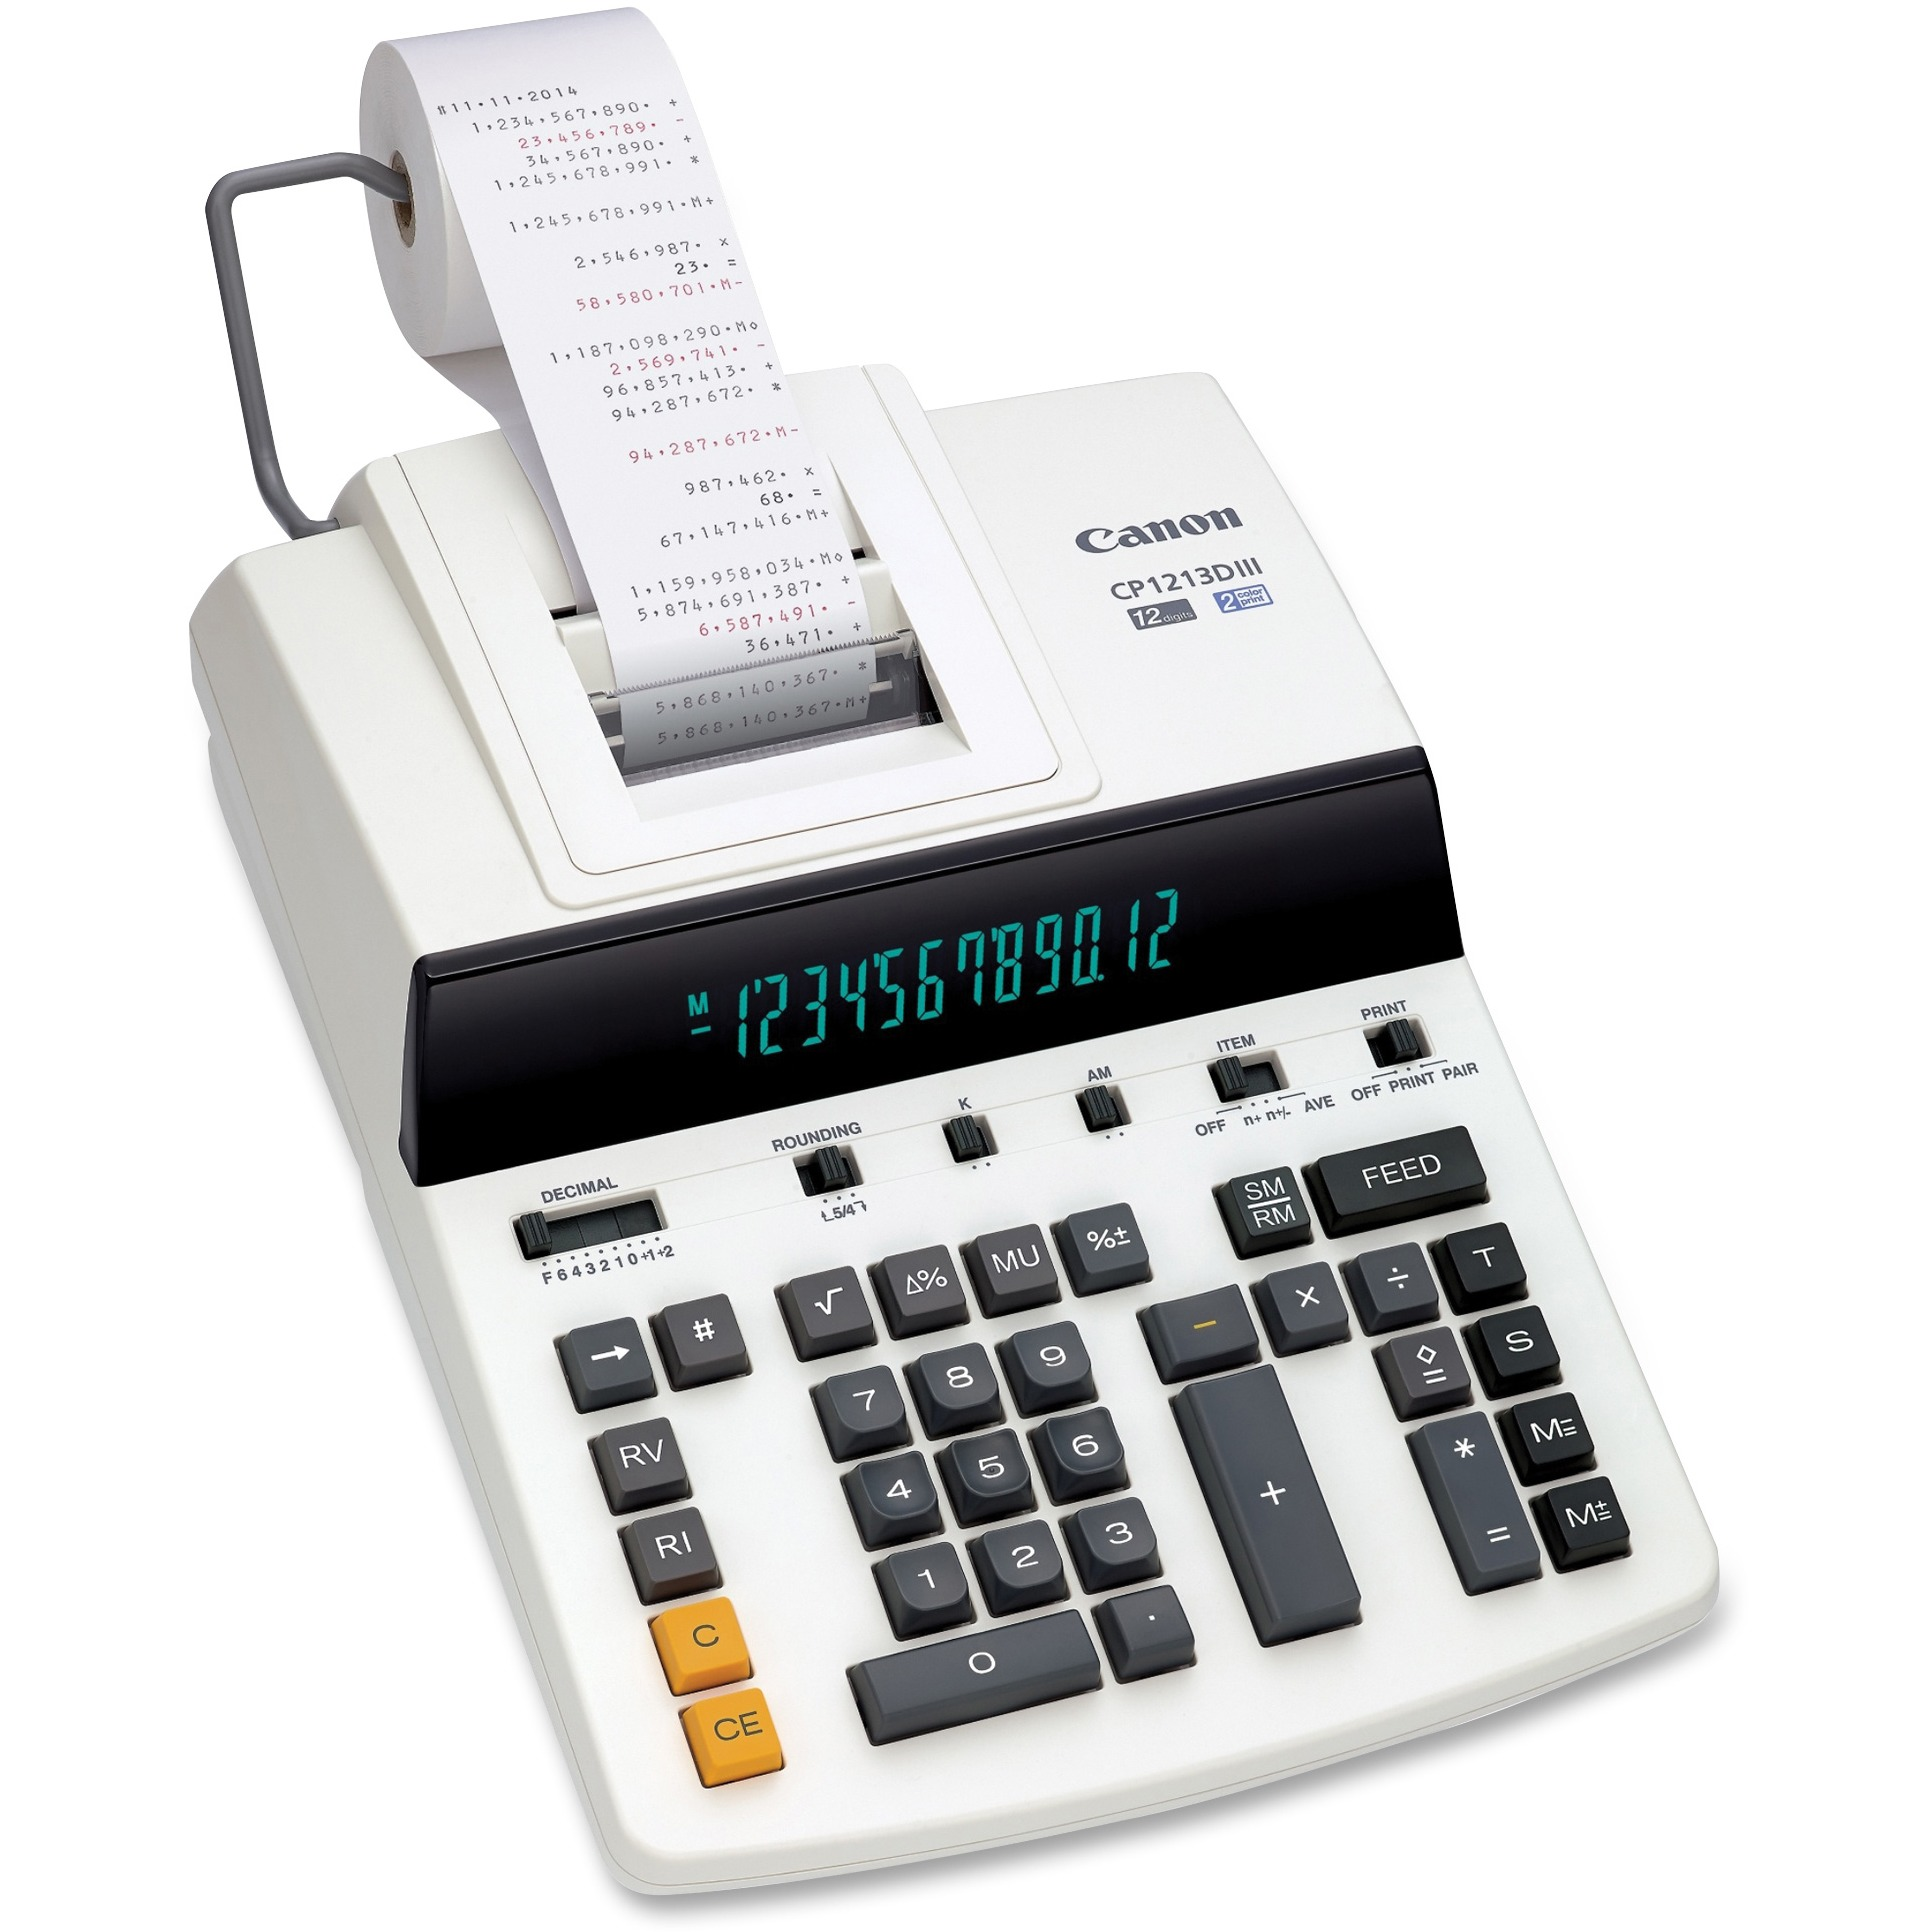 Canon CP1213DIII 12-Digit Heavy-Duty Commercial Desktop Printing Calculator, 4.8 L/Sec